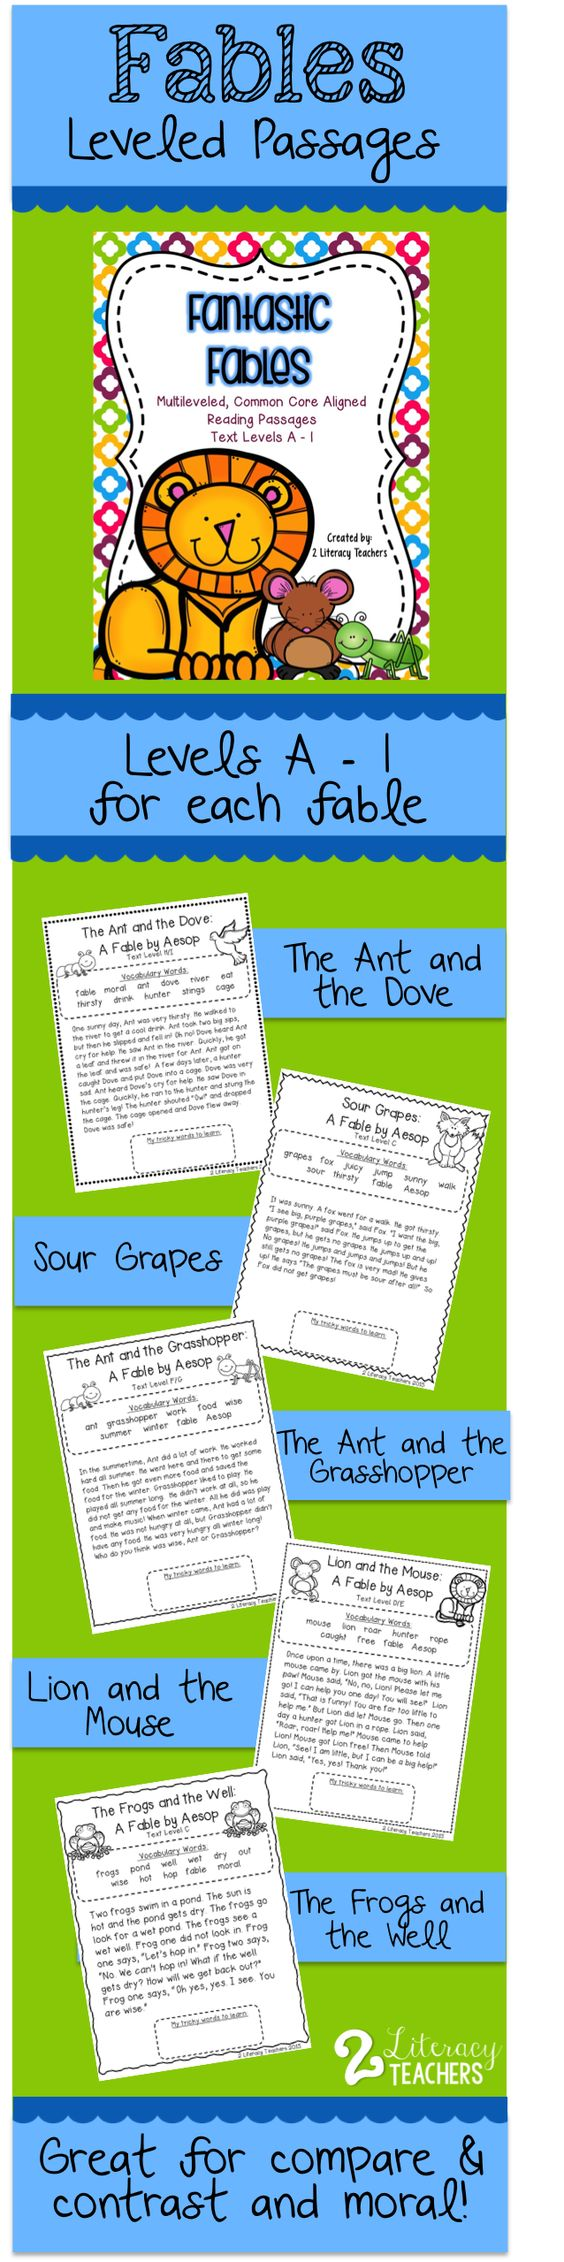 Worksheet Levelled Reading Passages aesops fables ccss aligned leveled reading passages and activities bundle